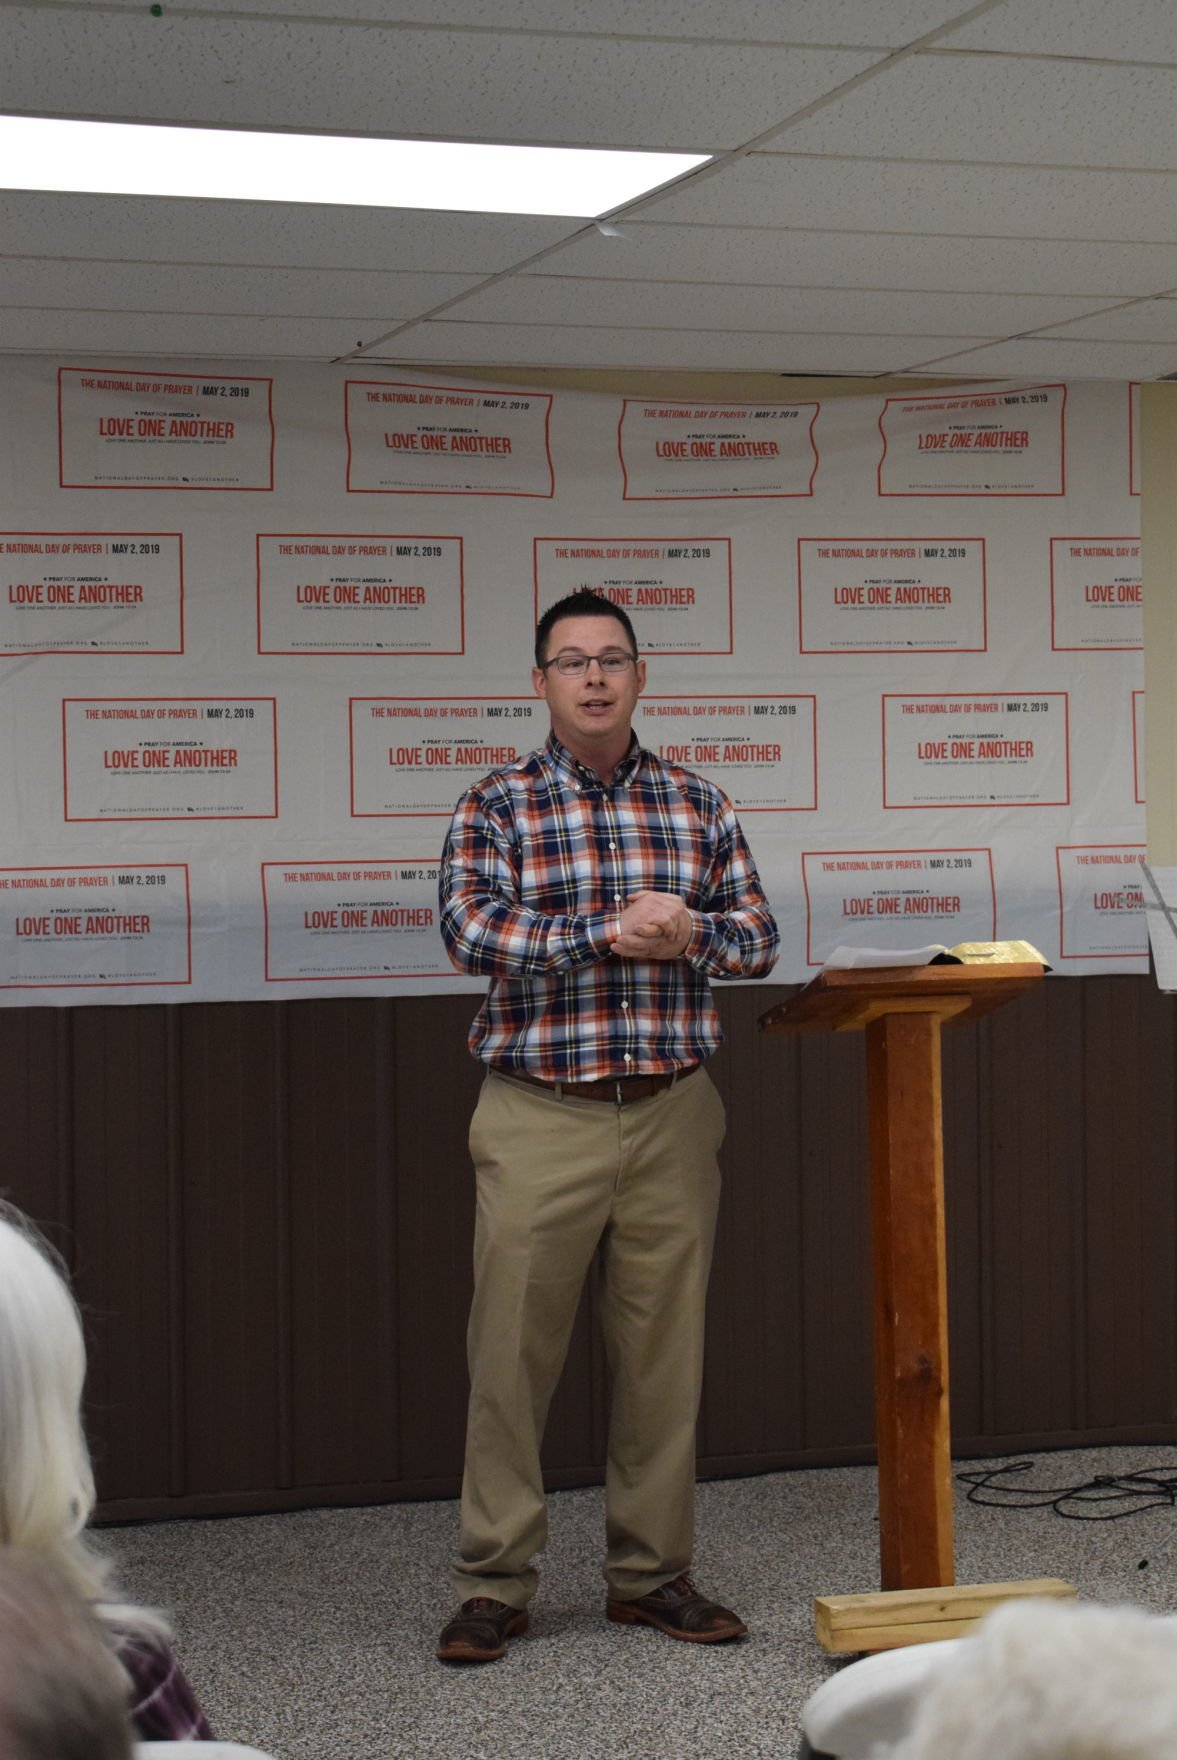 National Day of Prayer observed in Lewis County